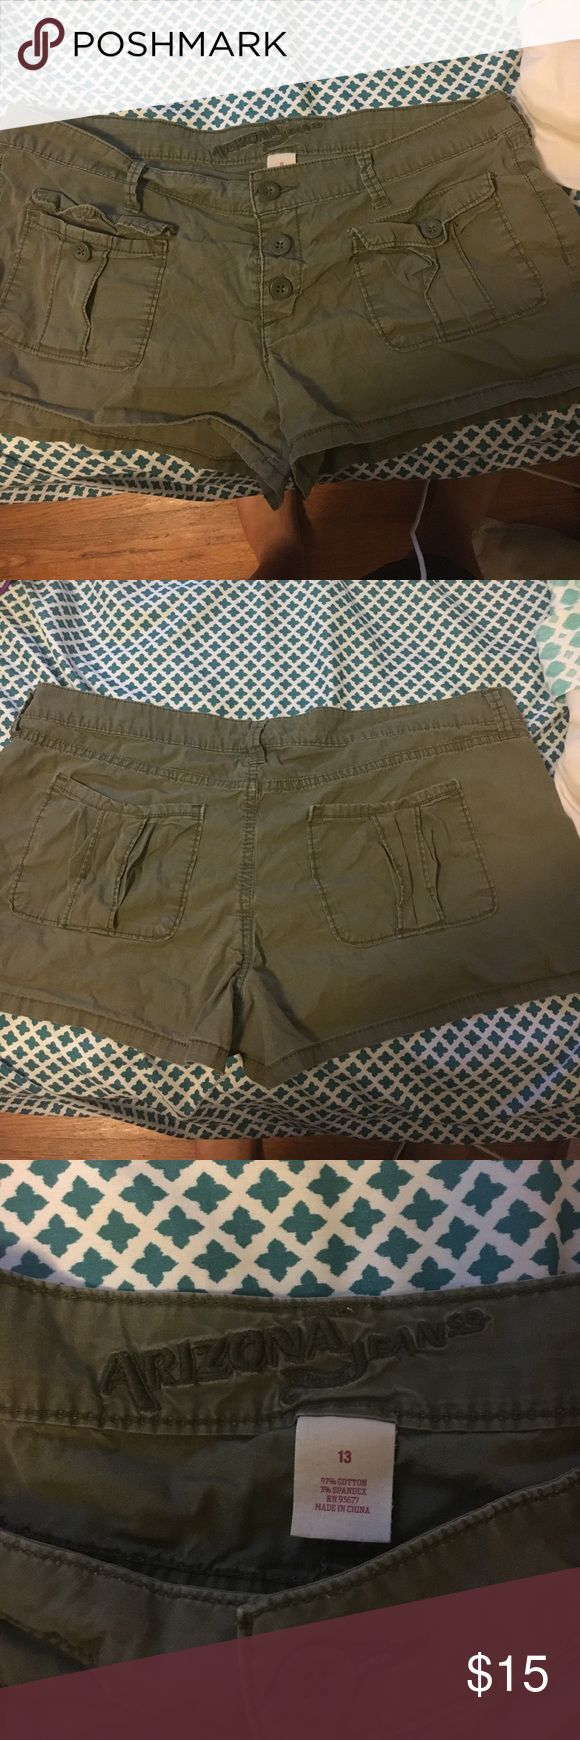 Army green shorts JcPenney army green shorts. 3 button up. jcpenney Shorts Jean Shorts